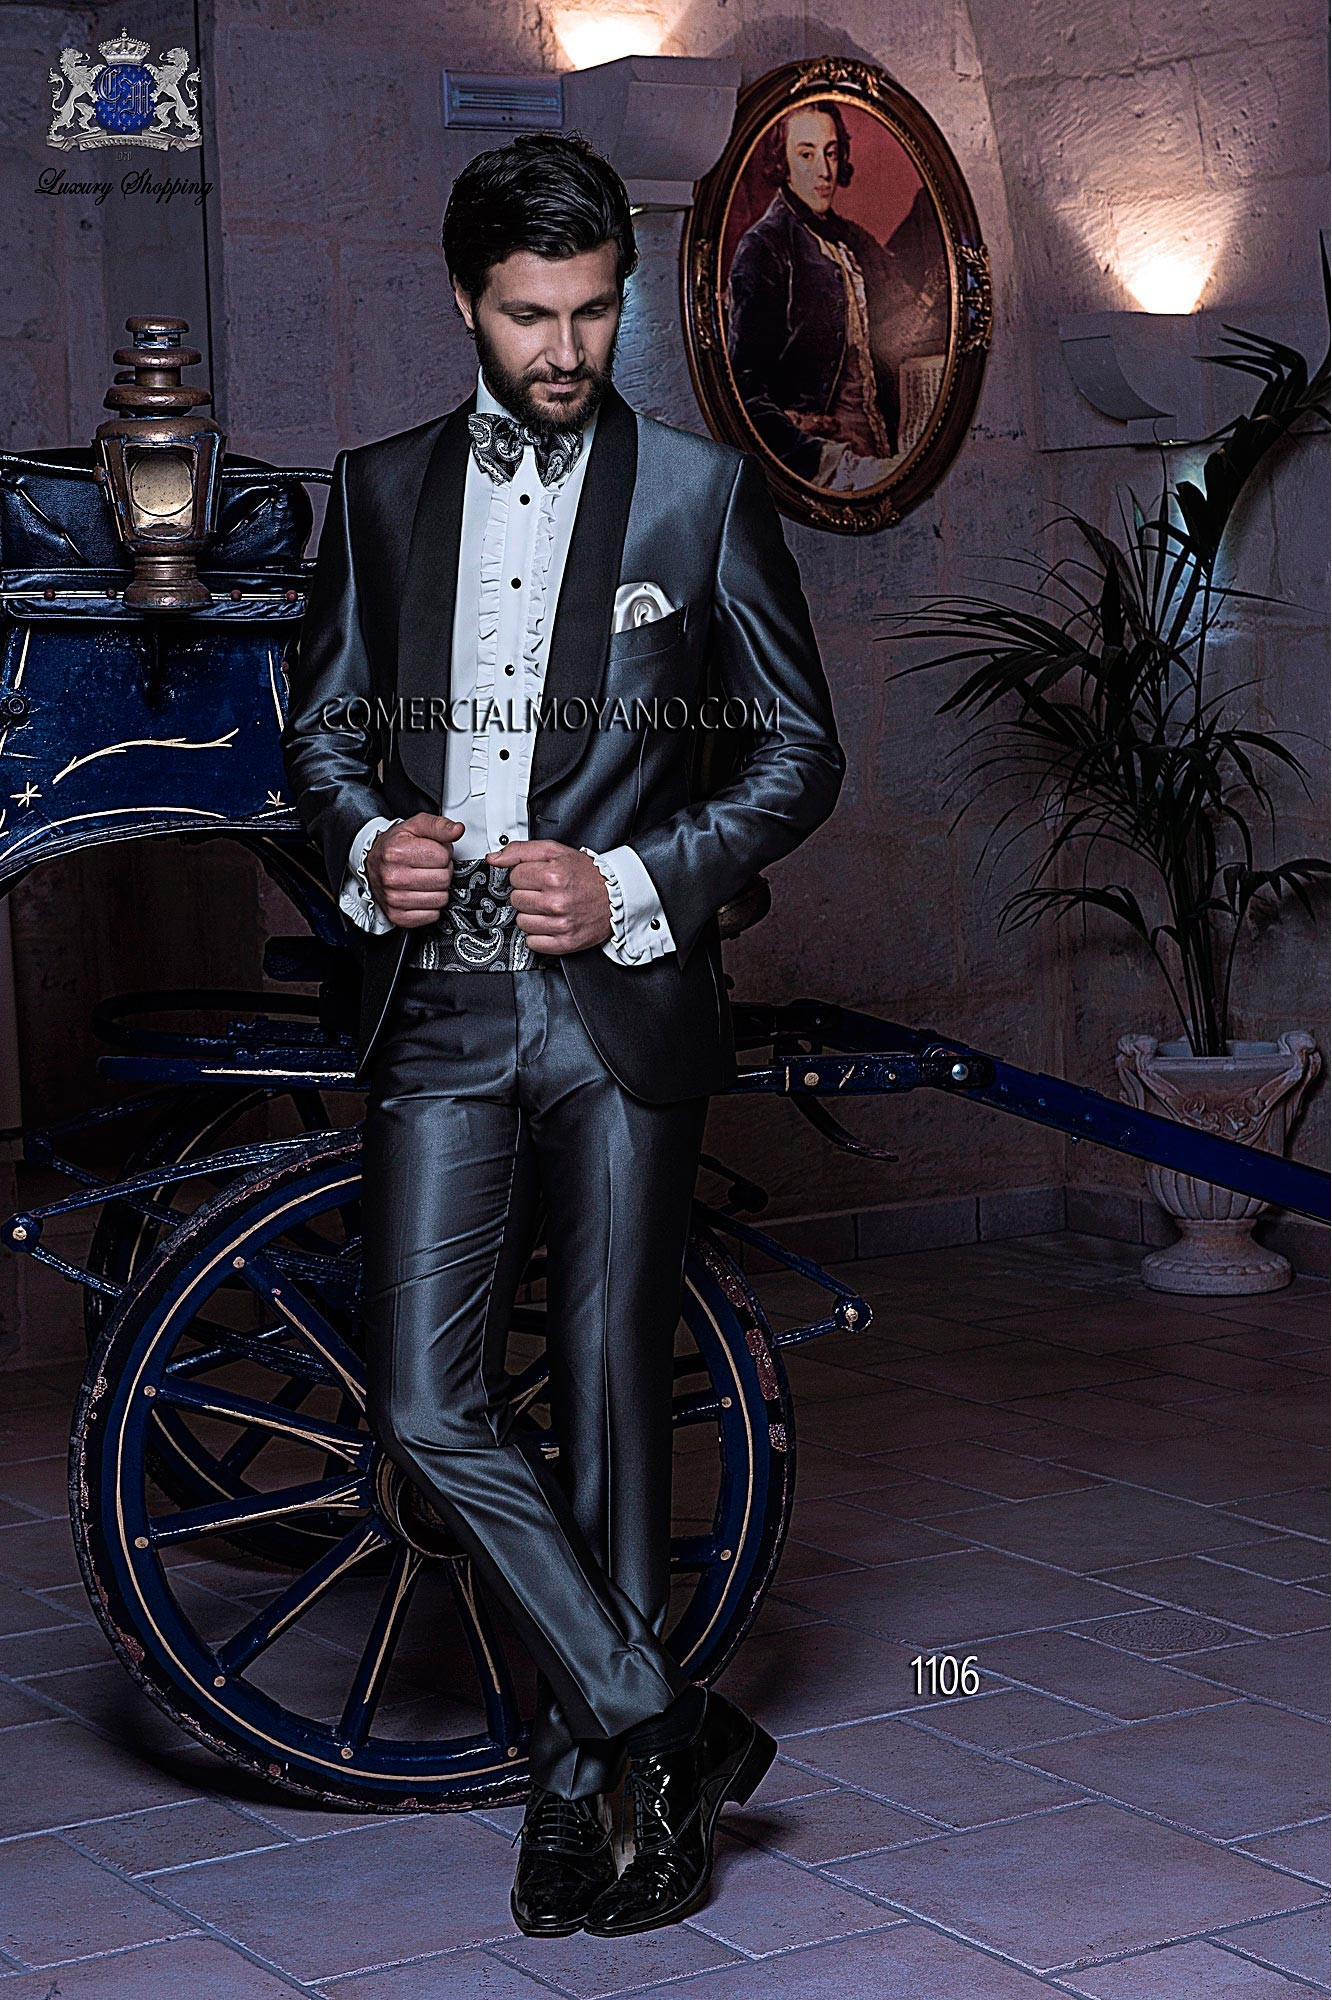 Italian gray tuxedo wedding suit in new performance fabric with black satin shawl lapels, style 1106 Ottavio Nuccio Gala, 2015 Black Tie collection.